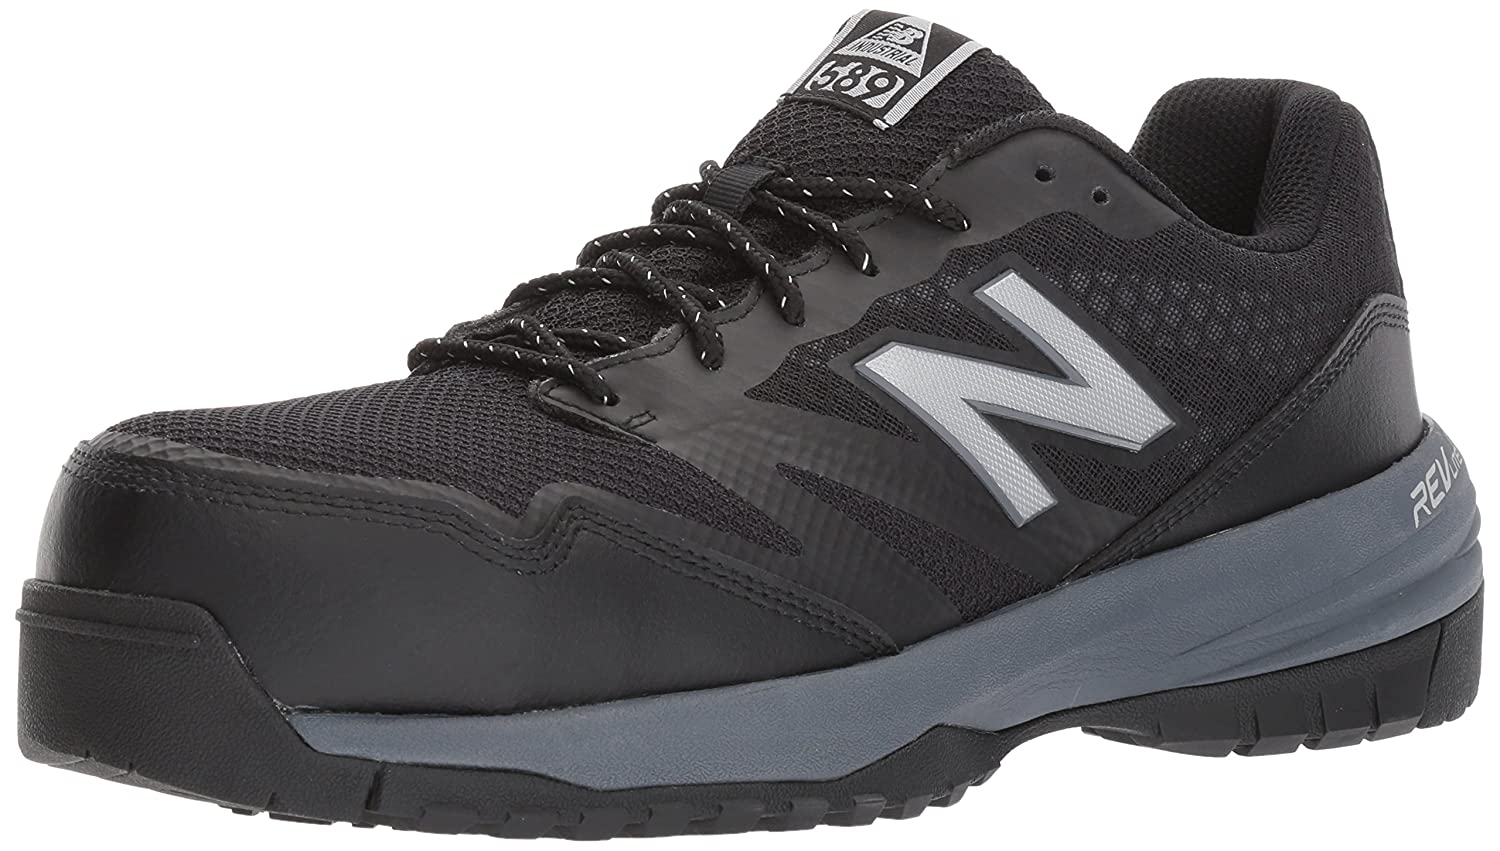 New Balance Men's 589V1 Work Training Shoe NB2-MID589V1-MNS